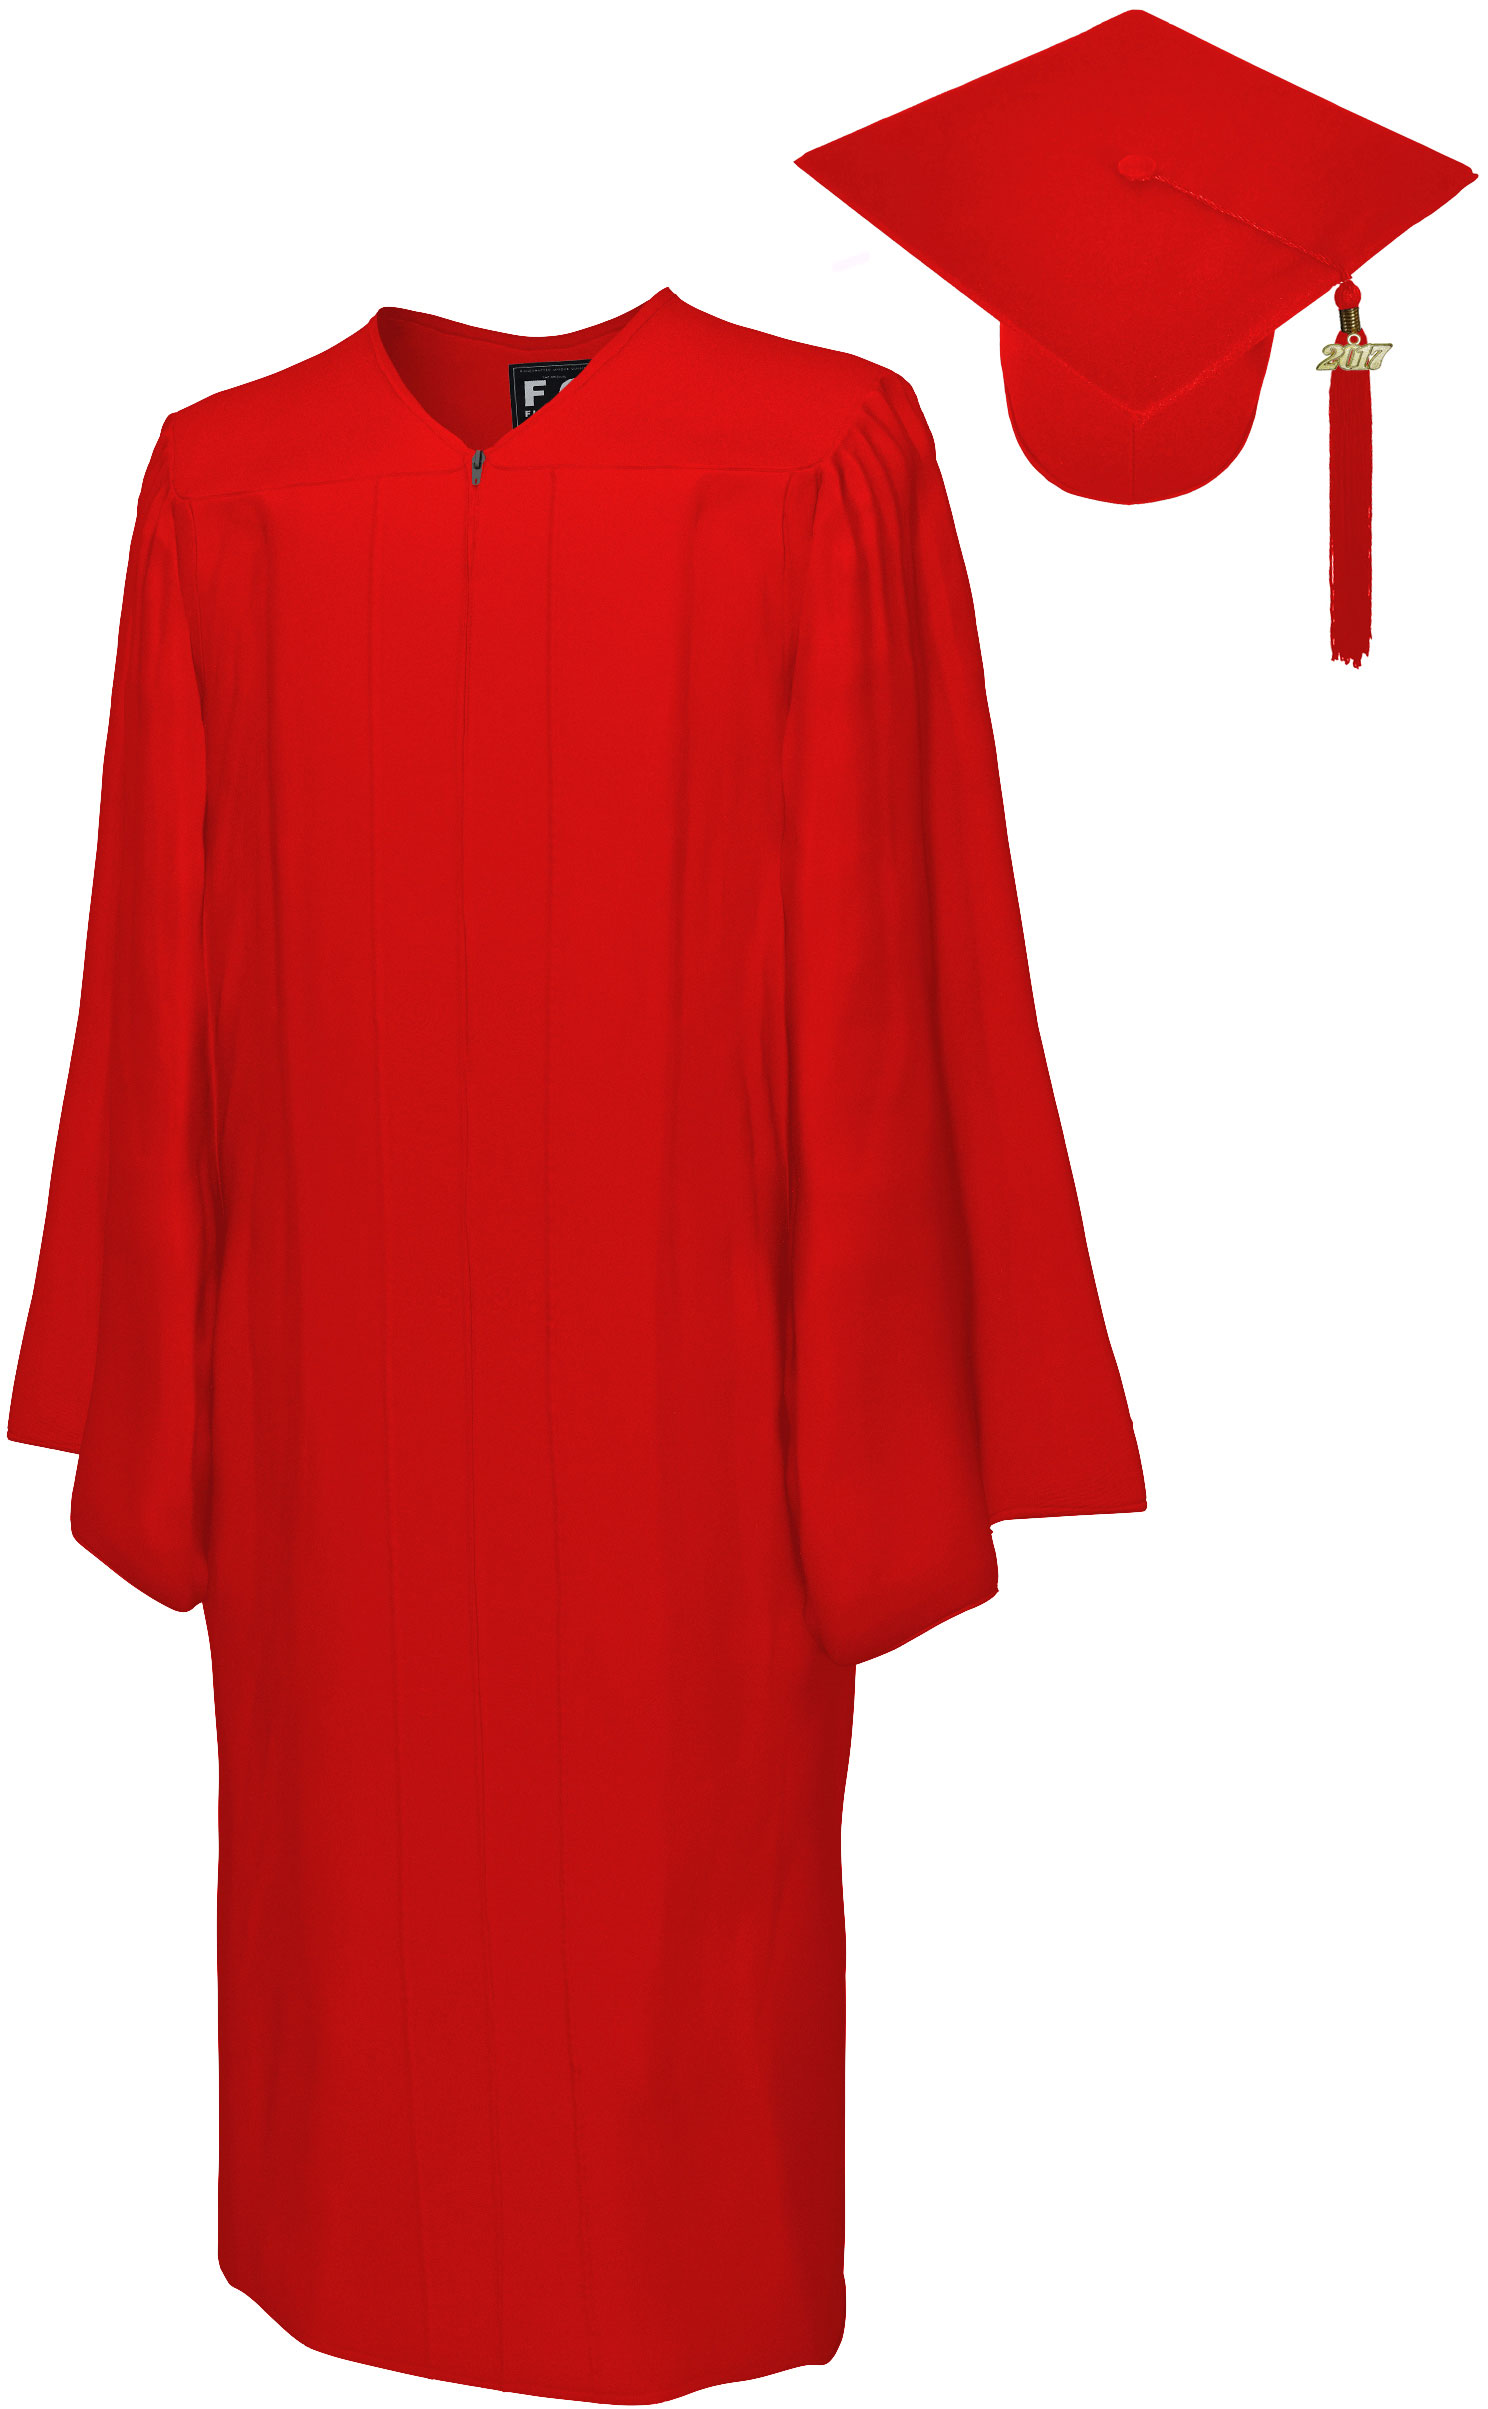 MATTE RED CAP, GOWN, GRADUATION BEAR SET-rs4251465613649